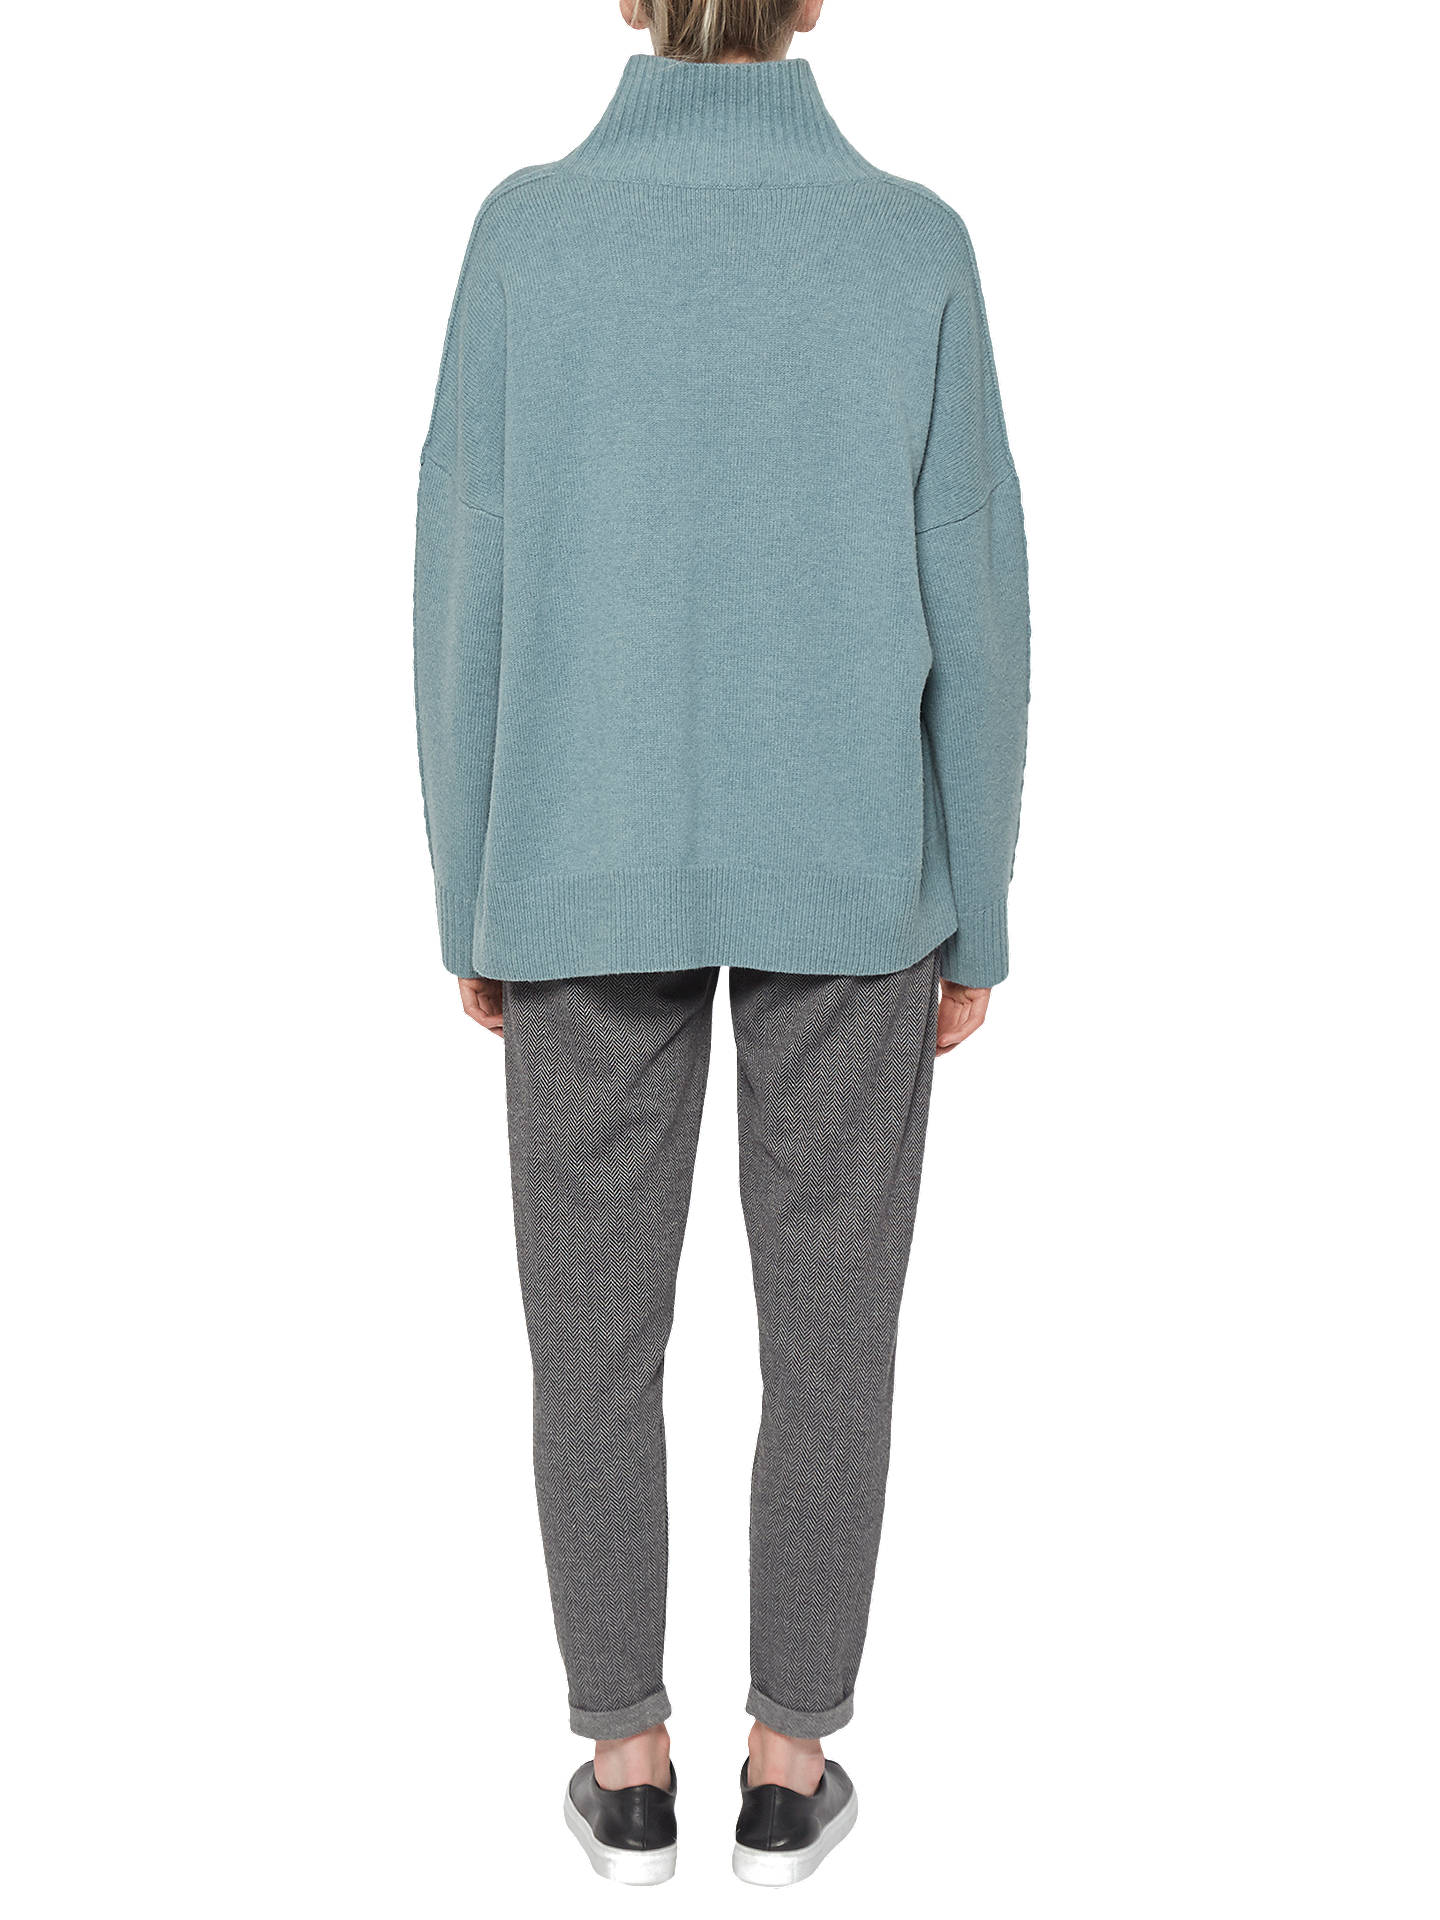 BuyFrench Connection Reba High Neck Jumper, Arona Blue, XS Online at johnlewis.com